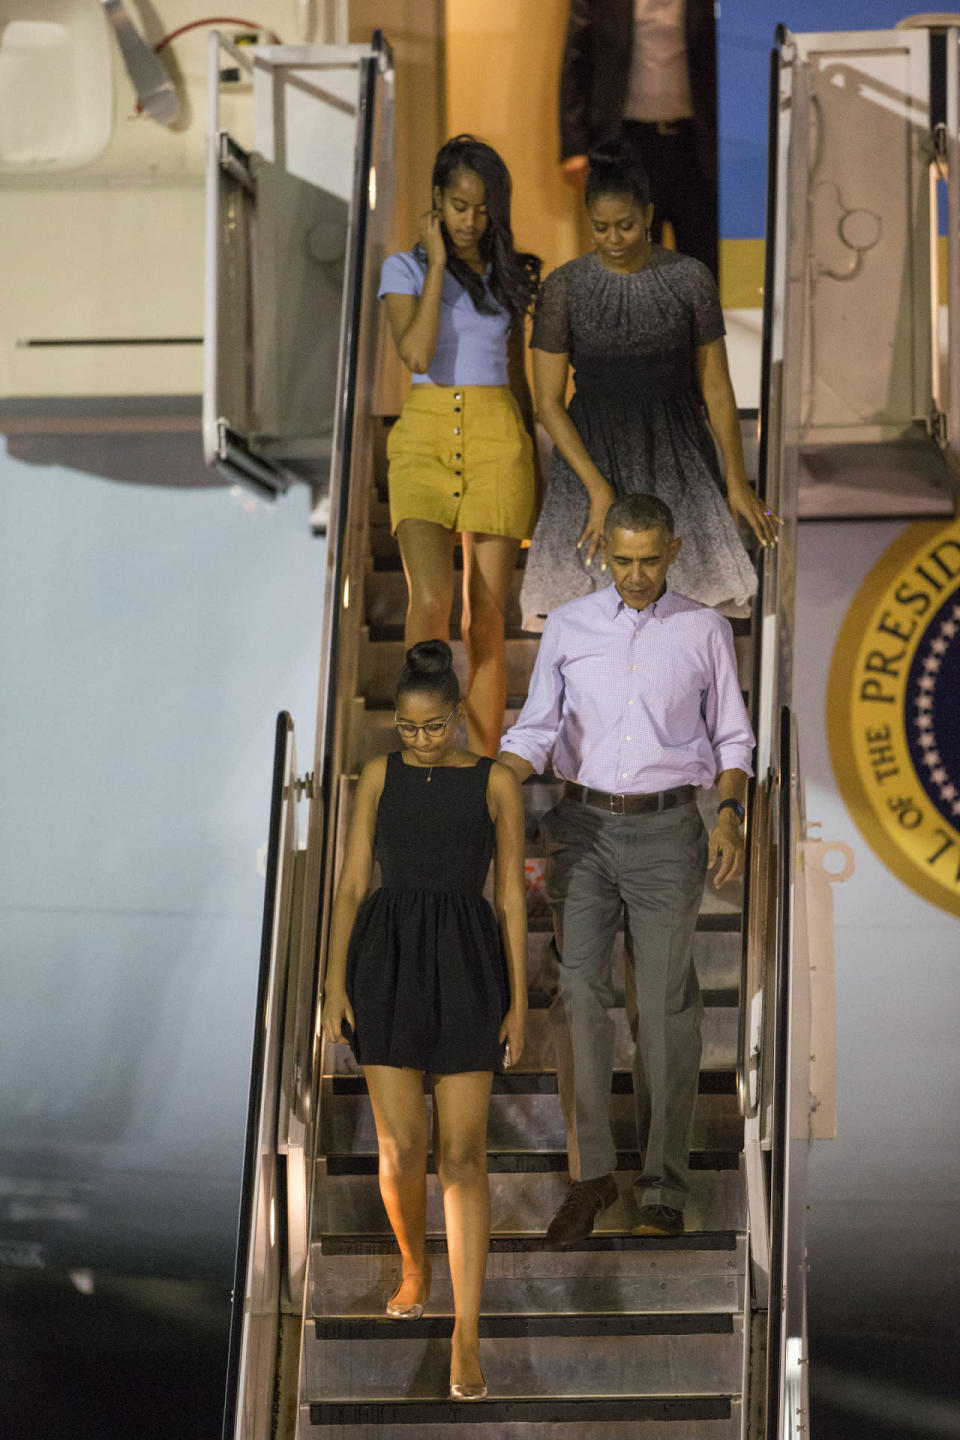 <p>While the weather in Washington, DC, has been unseasonably warm, the Obama family still decided to escape to an even warmer climate for the holidays. Touching down at Joint Base Pearl Harbor/Hickam in Honolulu, President Obama left his jacket on Air Force One while the first lady and Sasha and Malia took off their tights. </p>